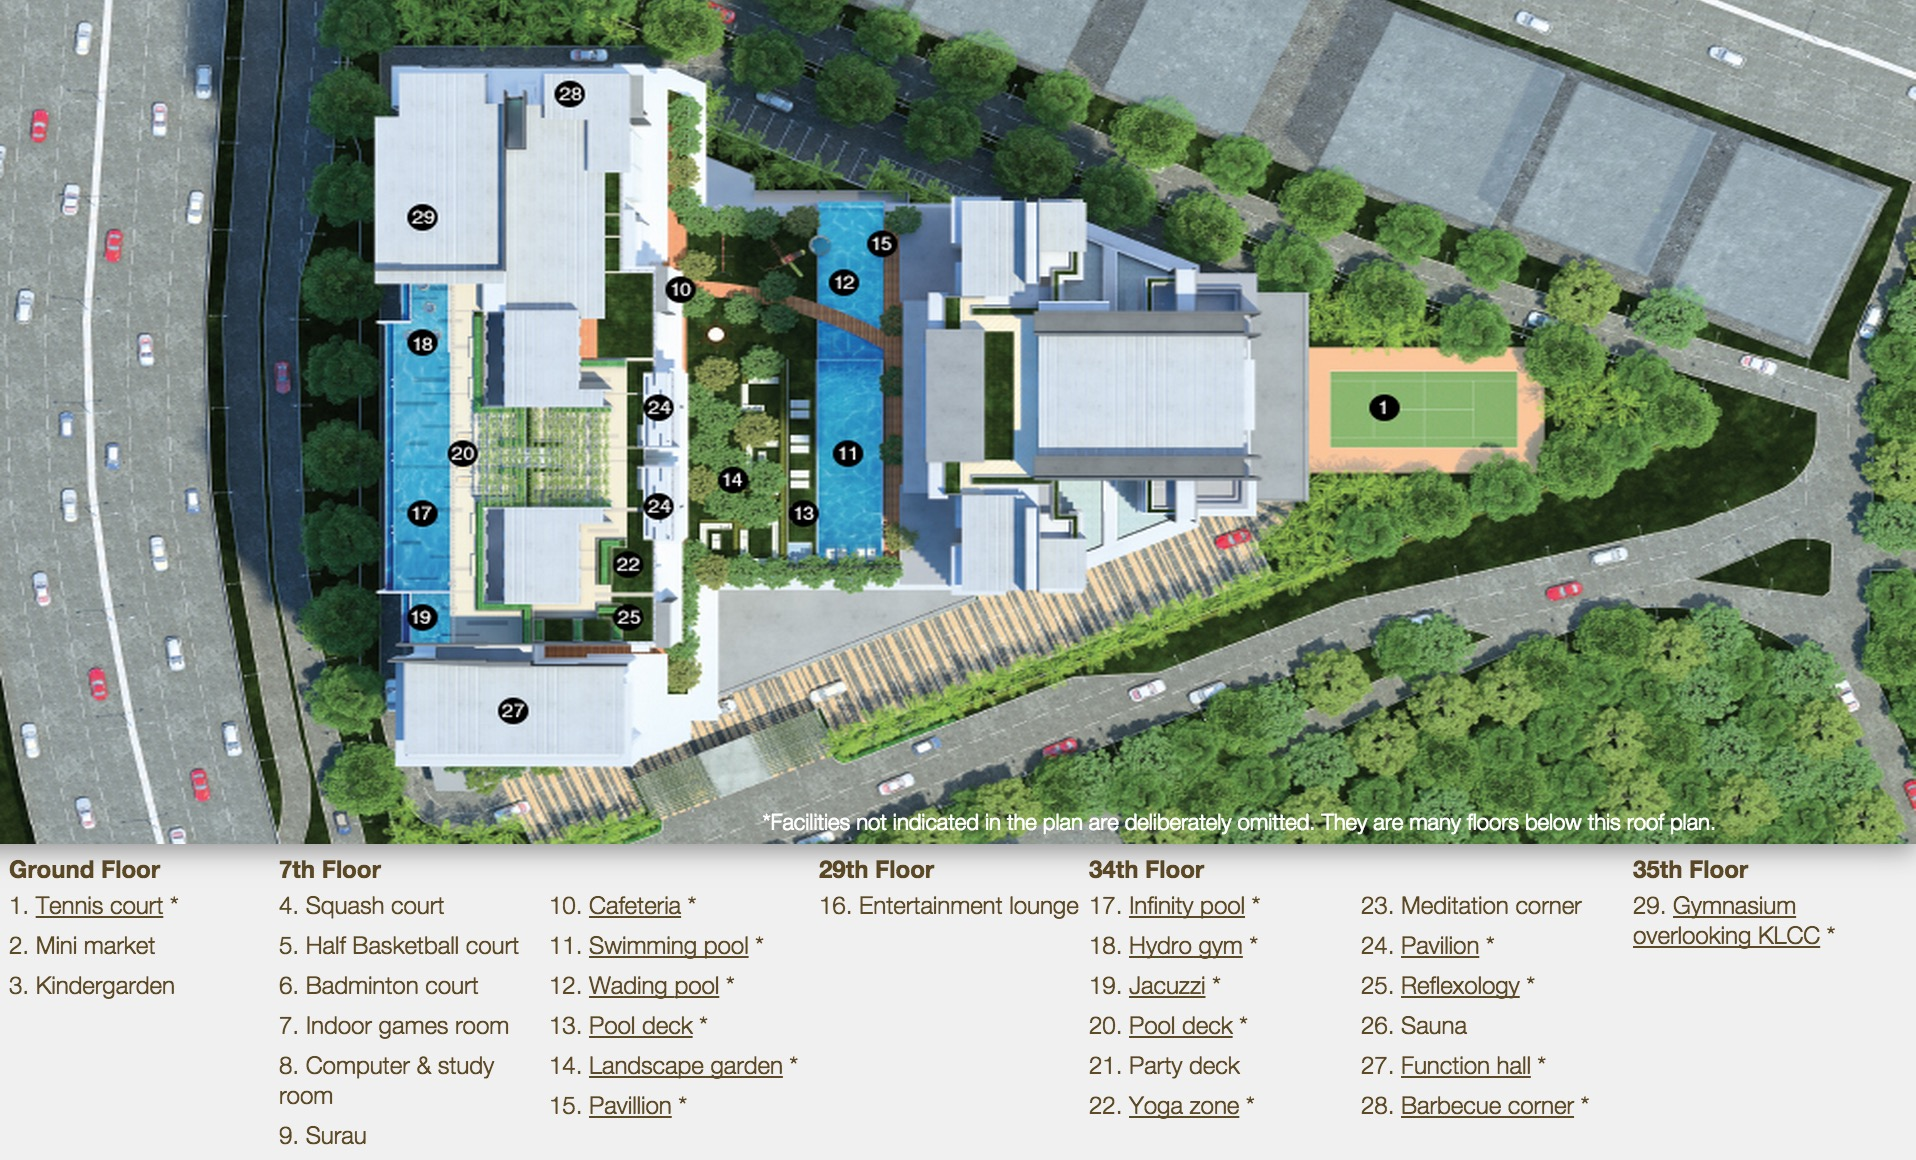 Site Plan of The Reach @ Titiwangsa